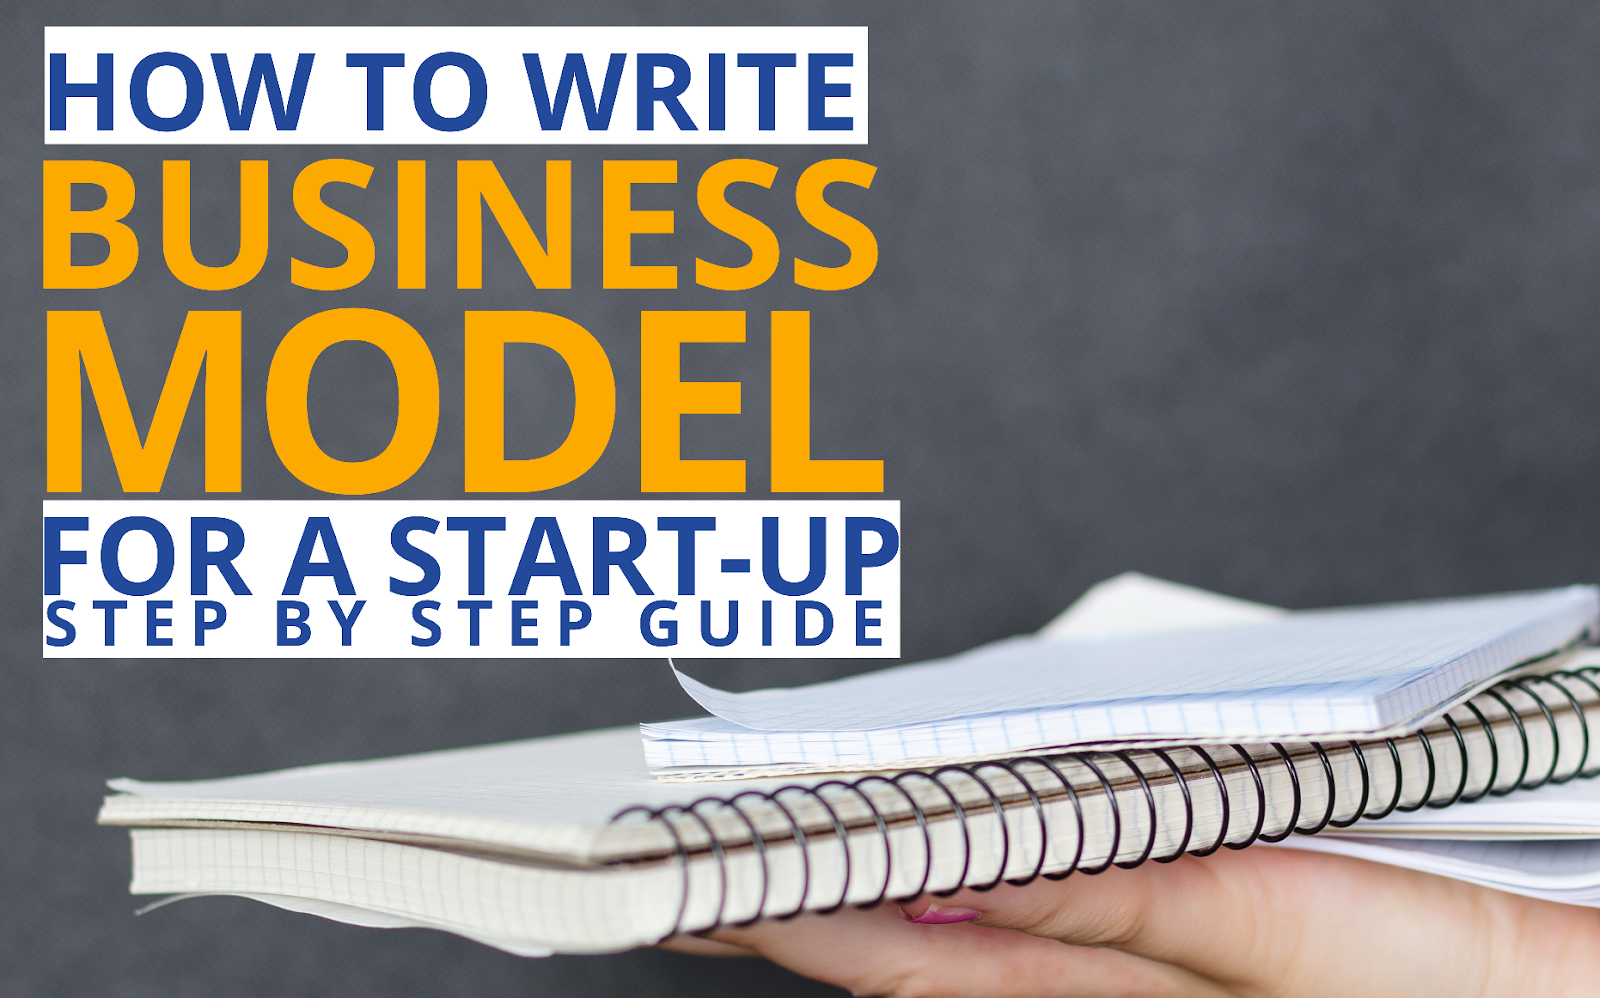 How to Write Business model for a startup: Step by Step Guide